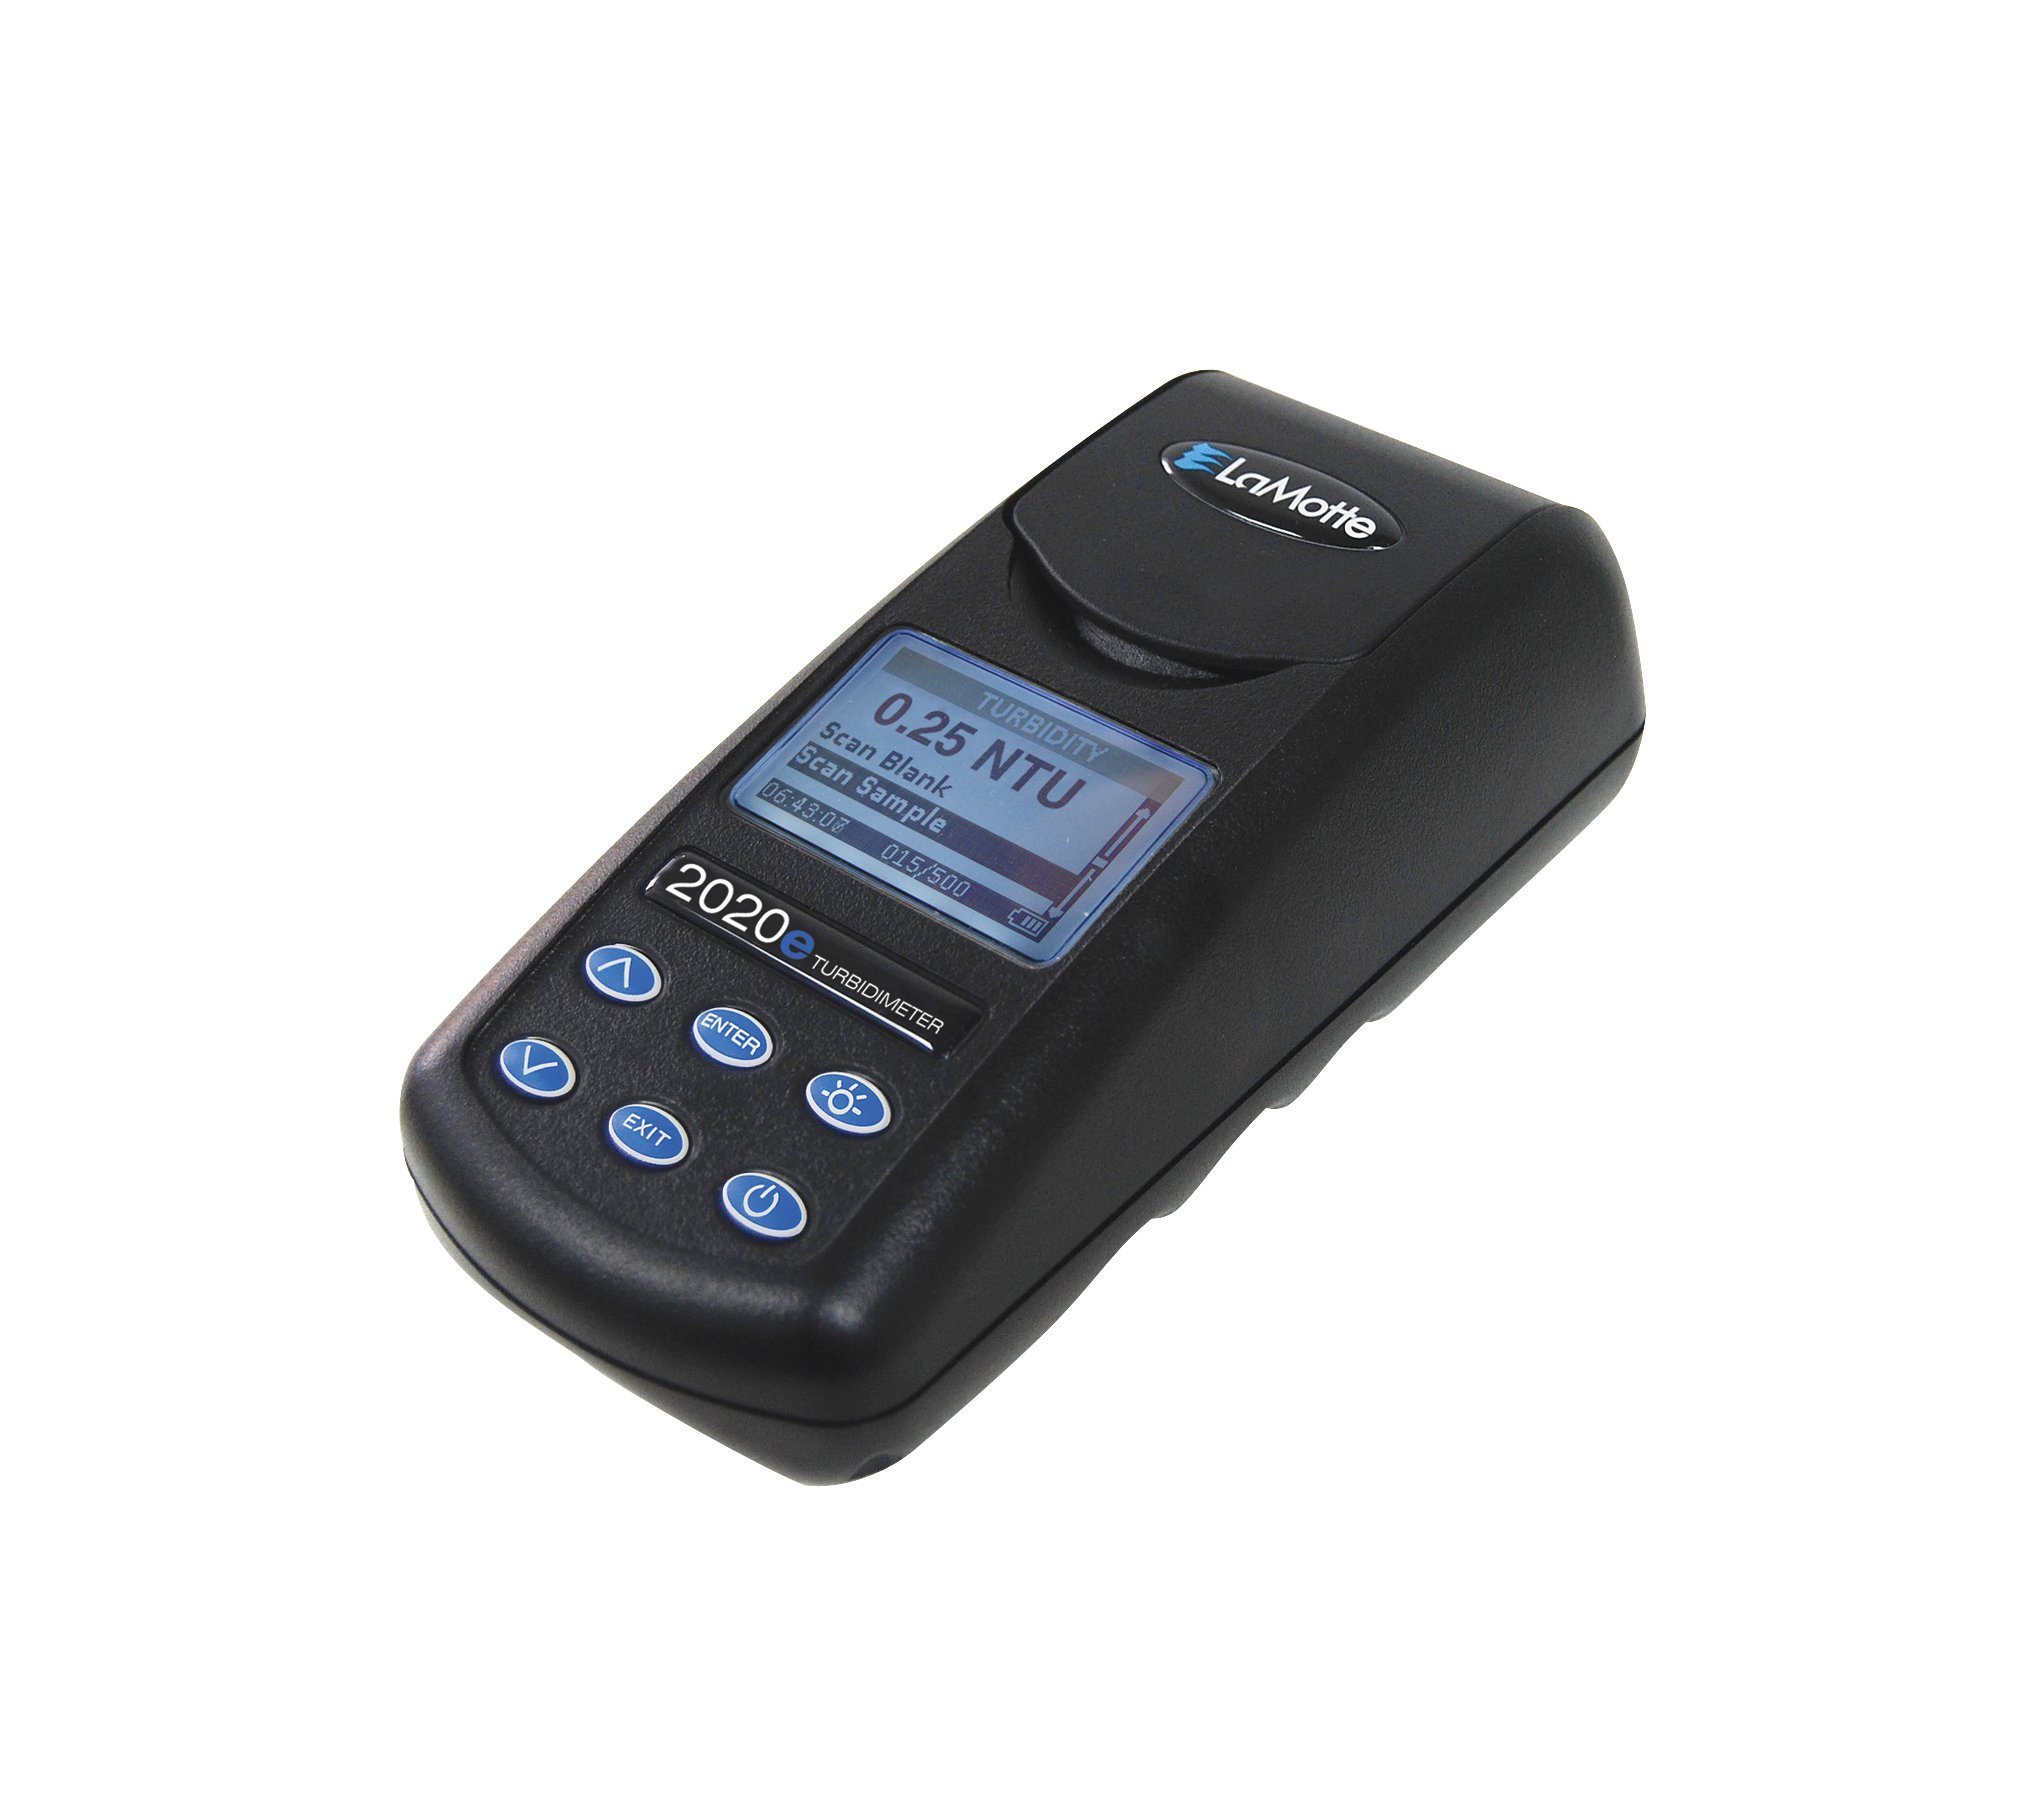 LaMotte 1970-EPA Model 2020we Portable Turbidity Meter Kit Complies with USEPA 180.1 Standard